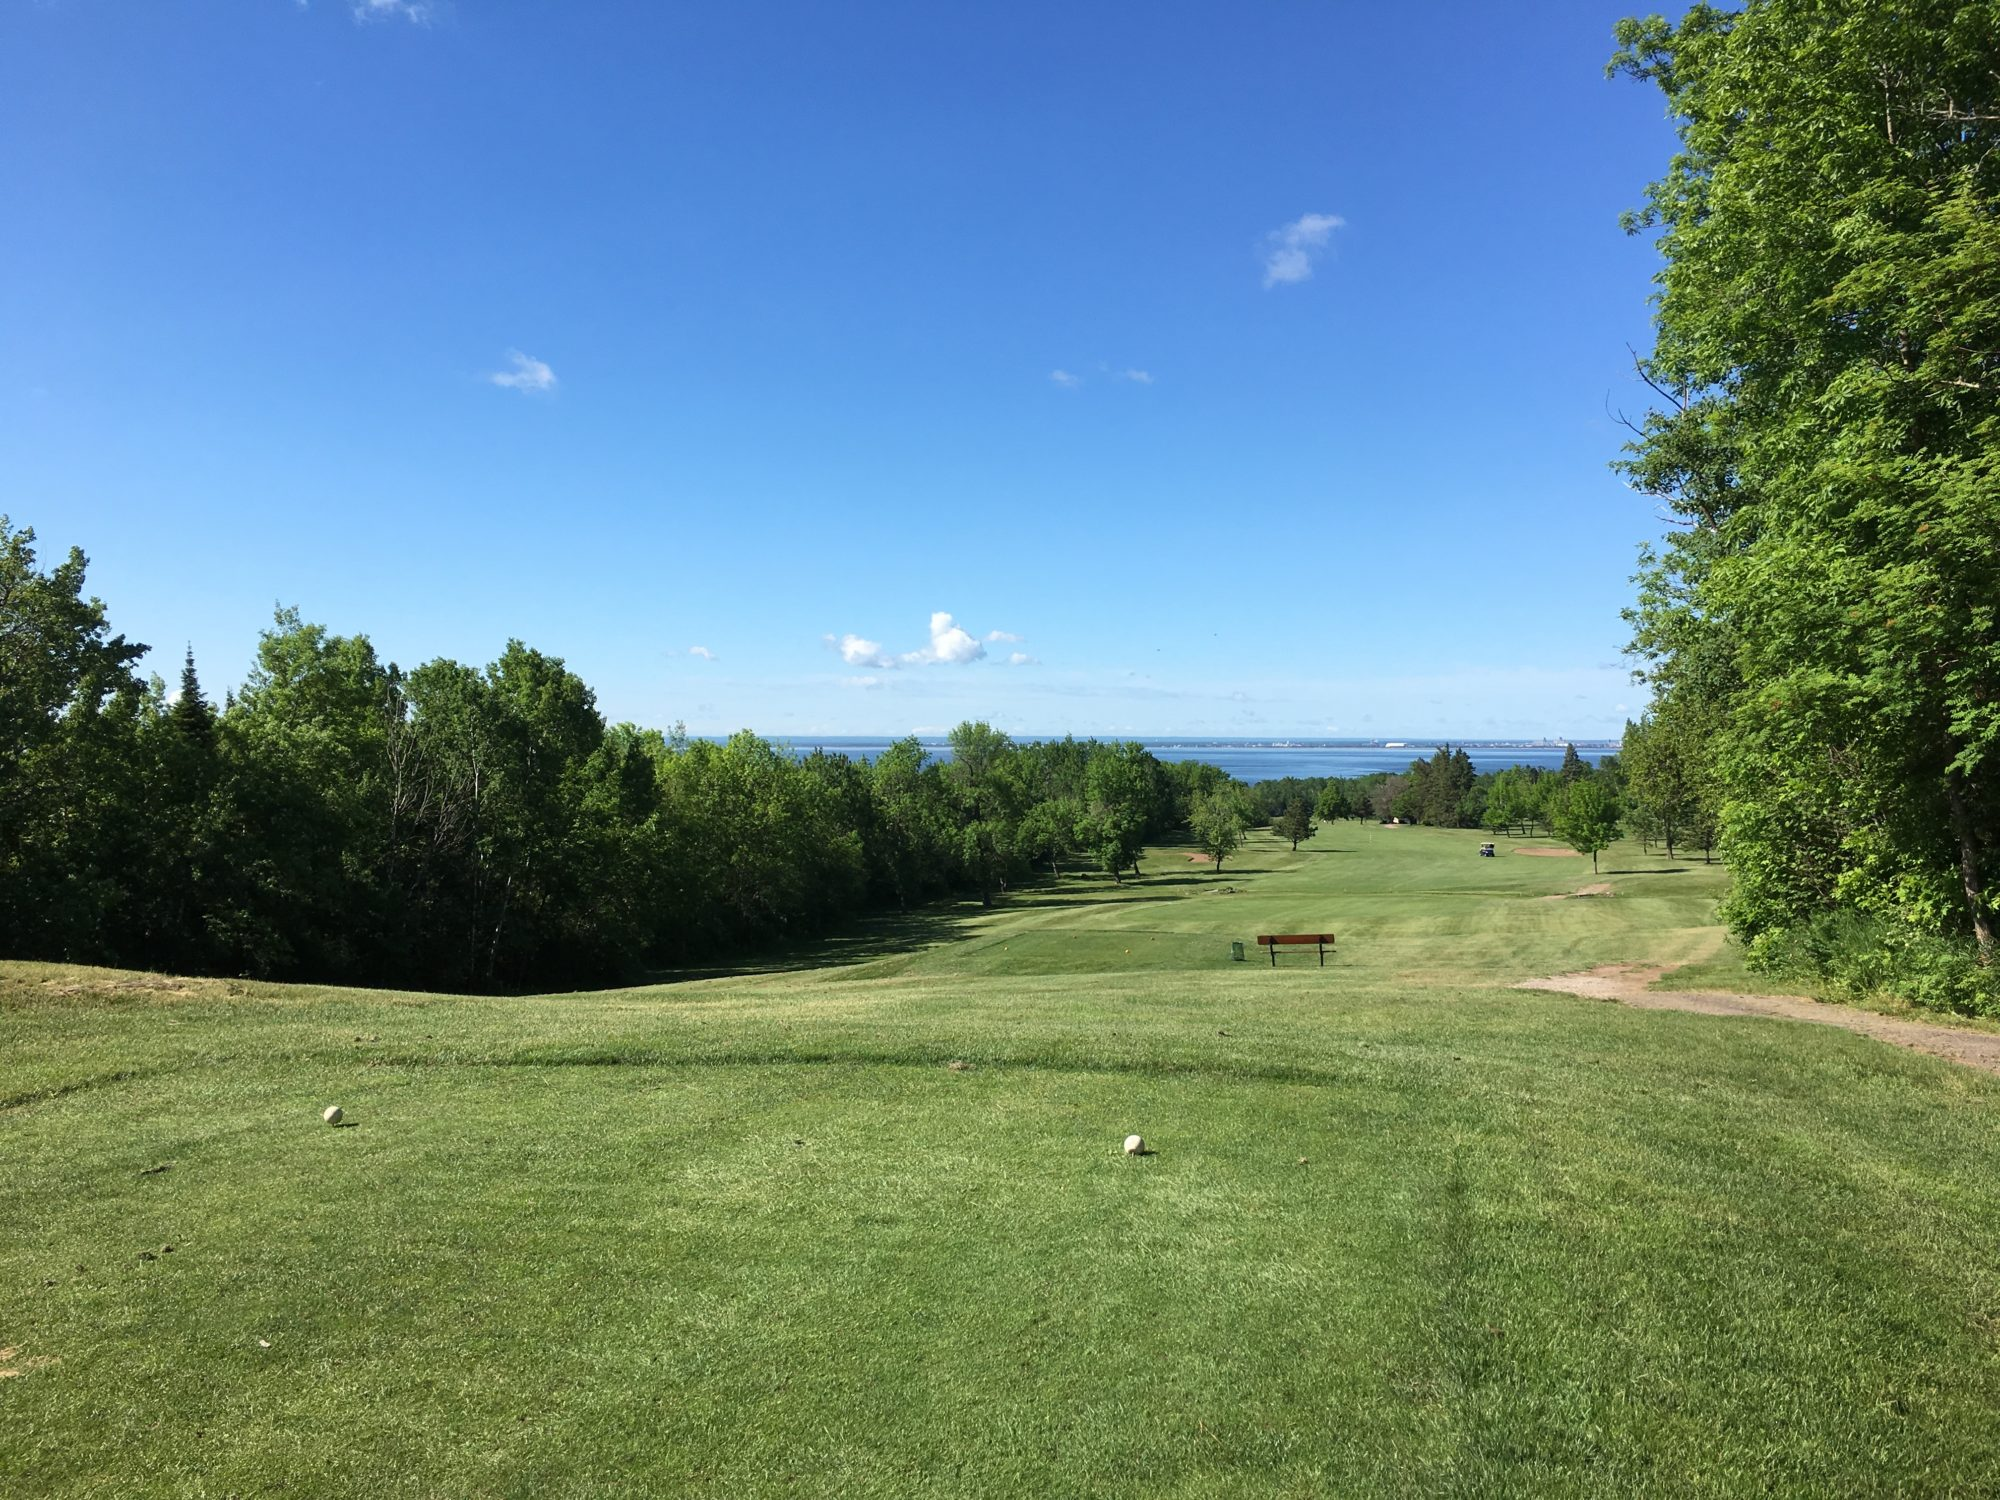 Lester Park Golf_Lake Superior View Duluth MN